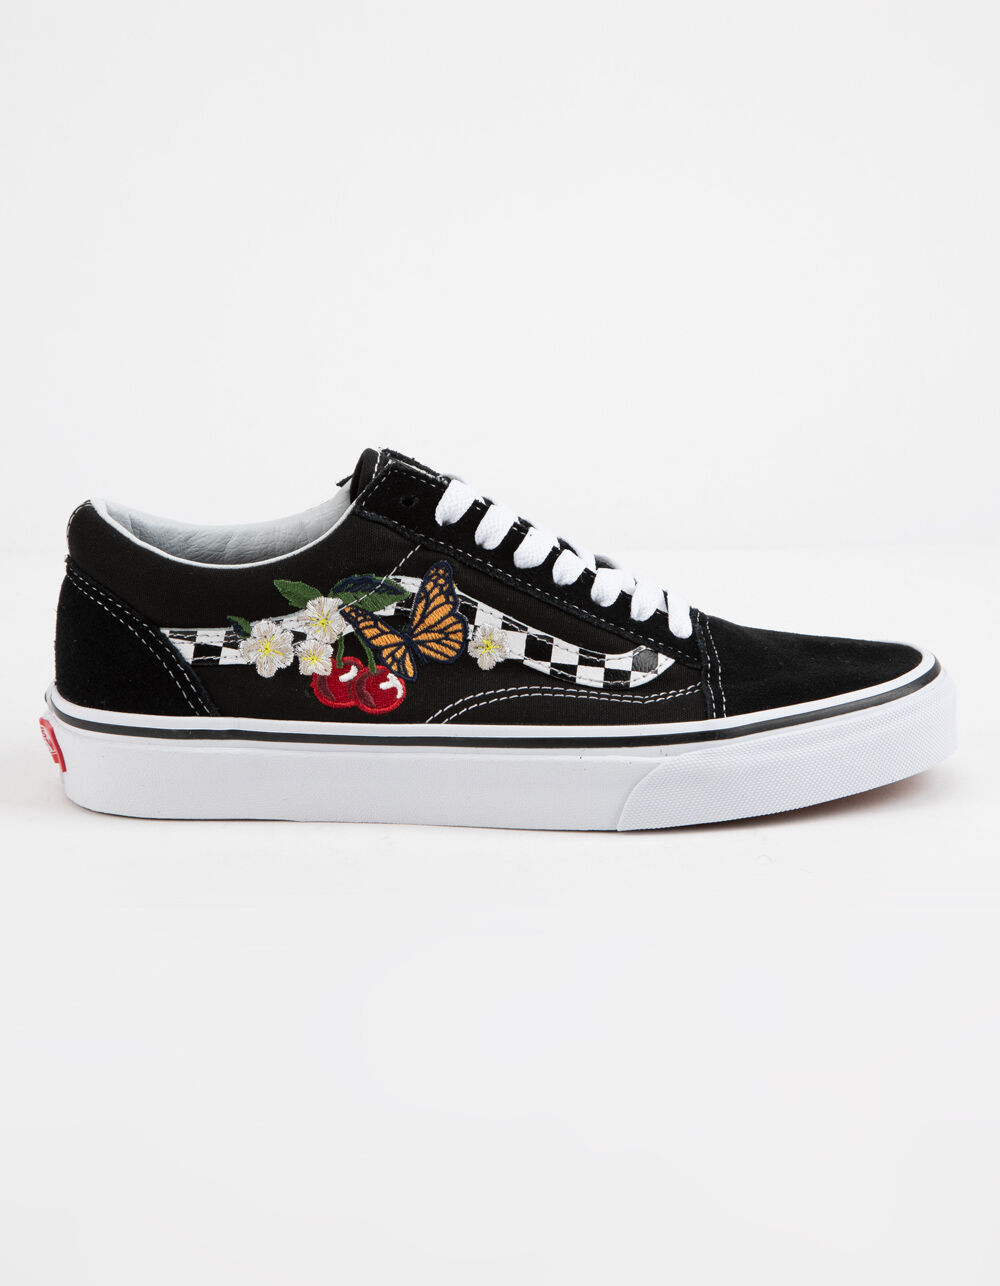 VANS Checker Floral Old Skool Shoes